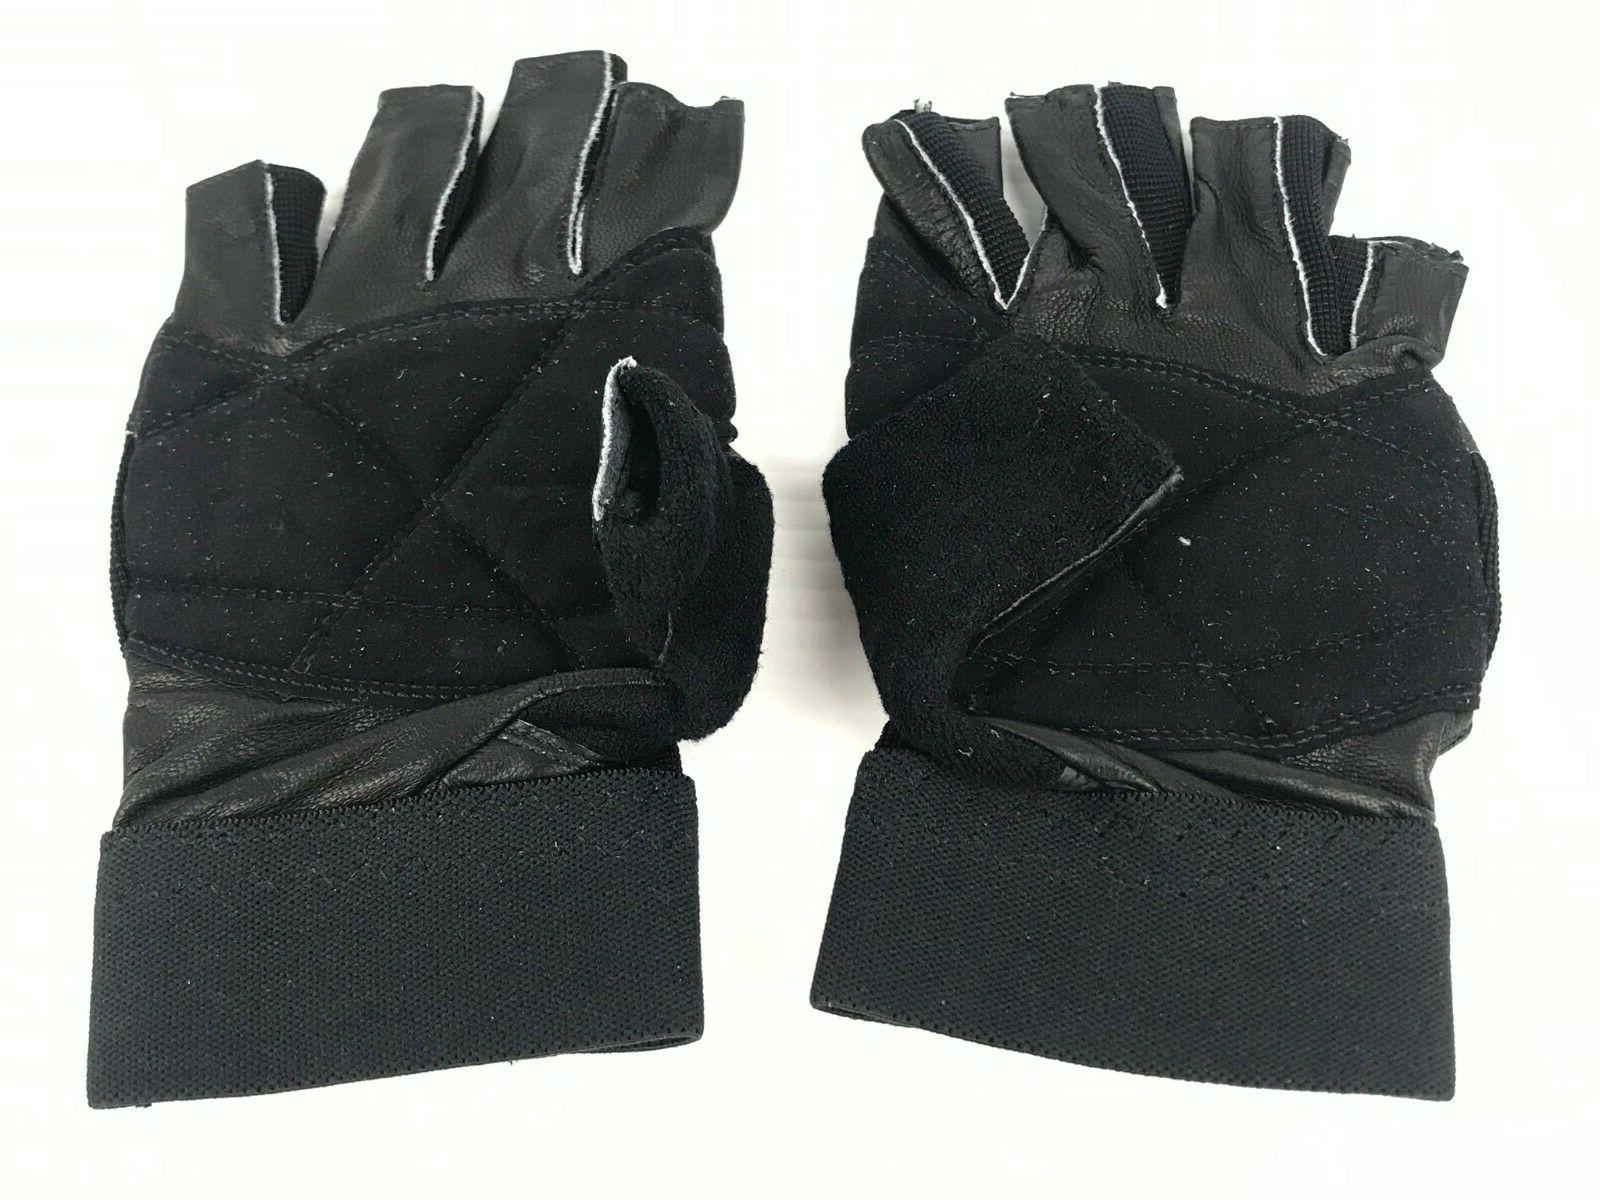 Nike XTR Weight Training/Lifting Gloves - Adult Large,